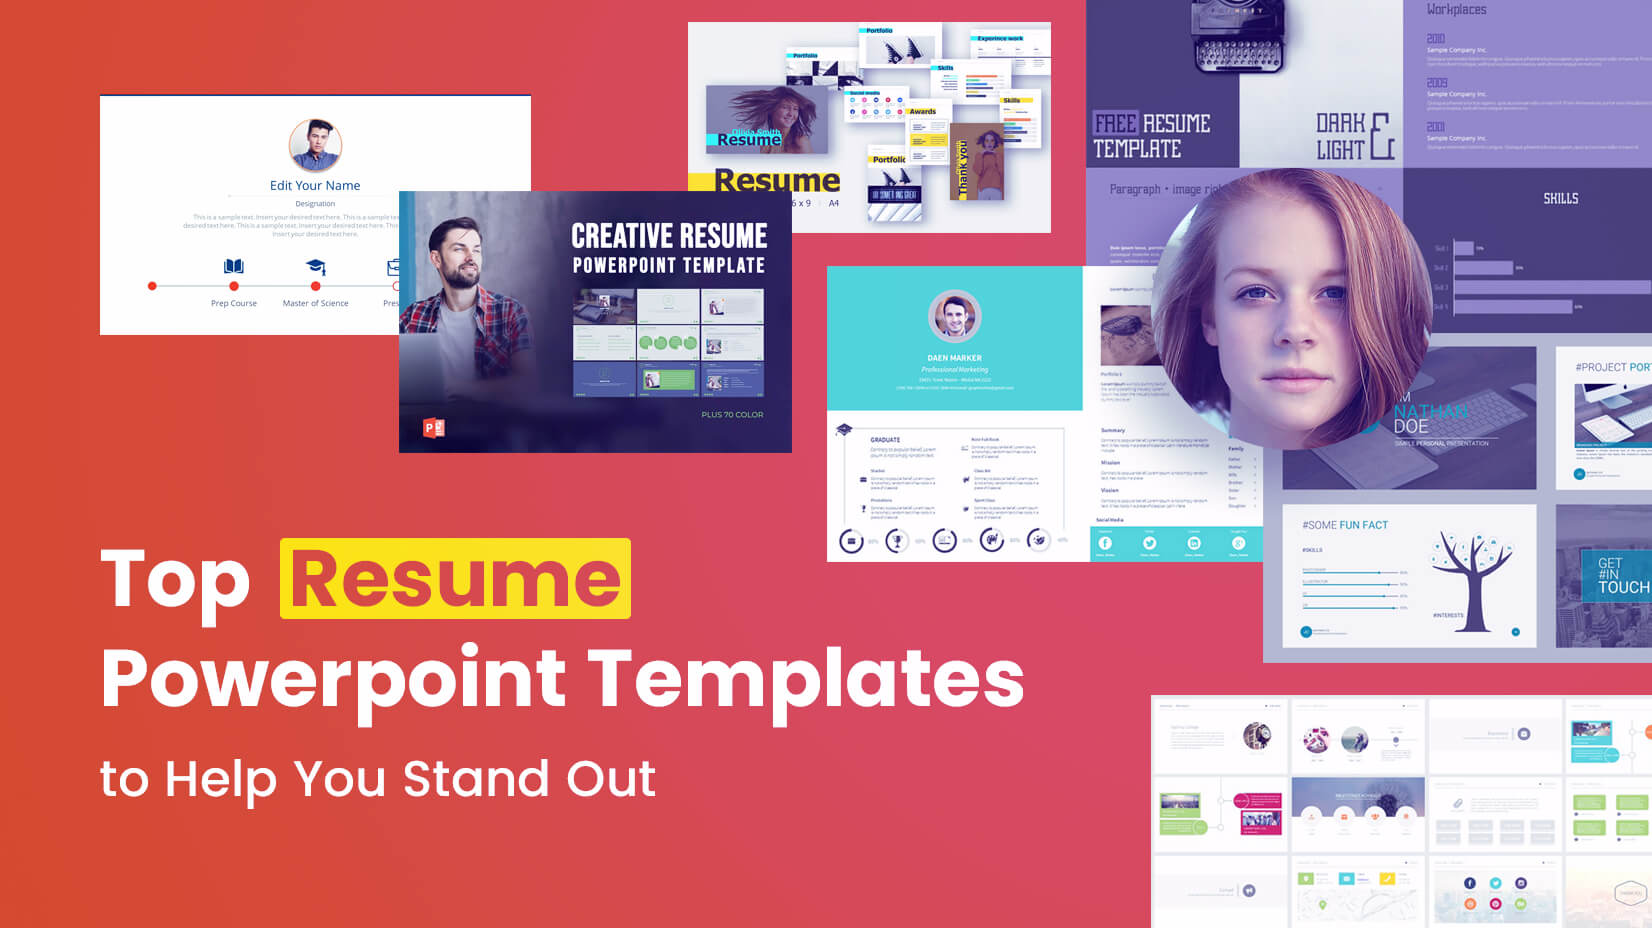 top resume powerpoint templates to help you stand out